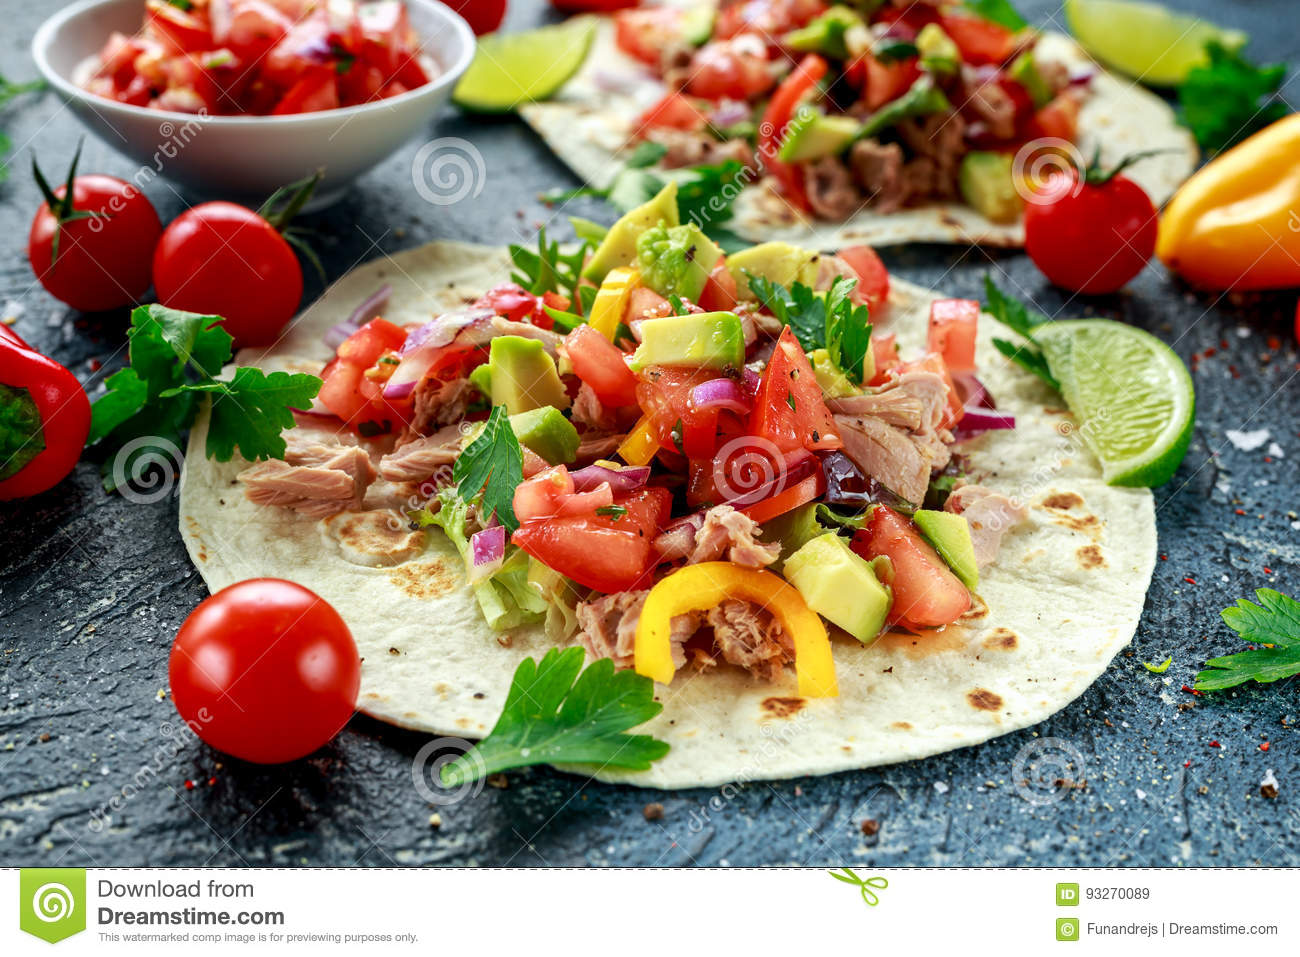 Tuna Tortilla with avocado, fresh salsa, limes, greens, parsley, tomatoes, red yellow pepper. colorful vegetable